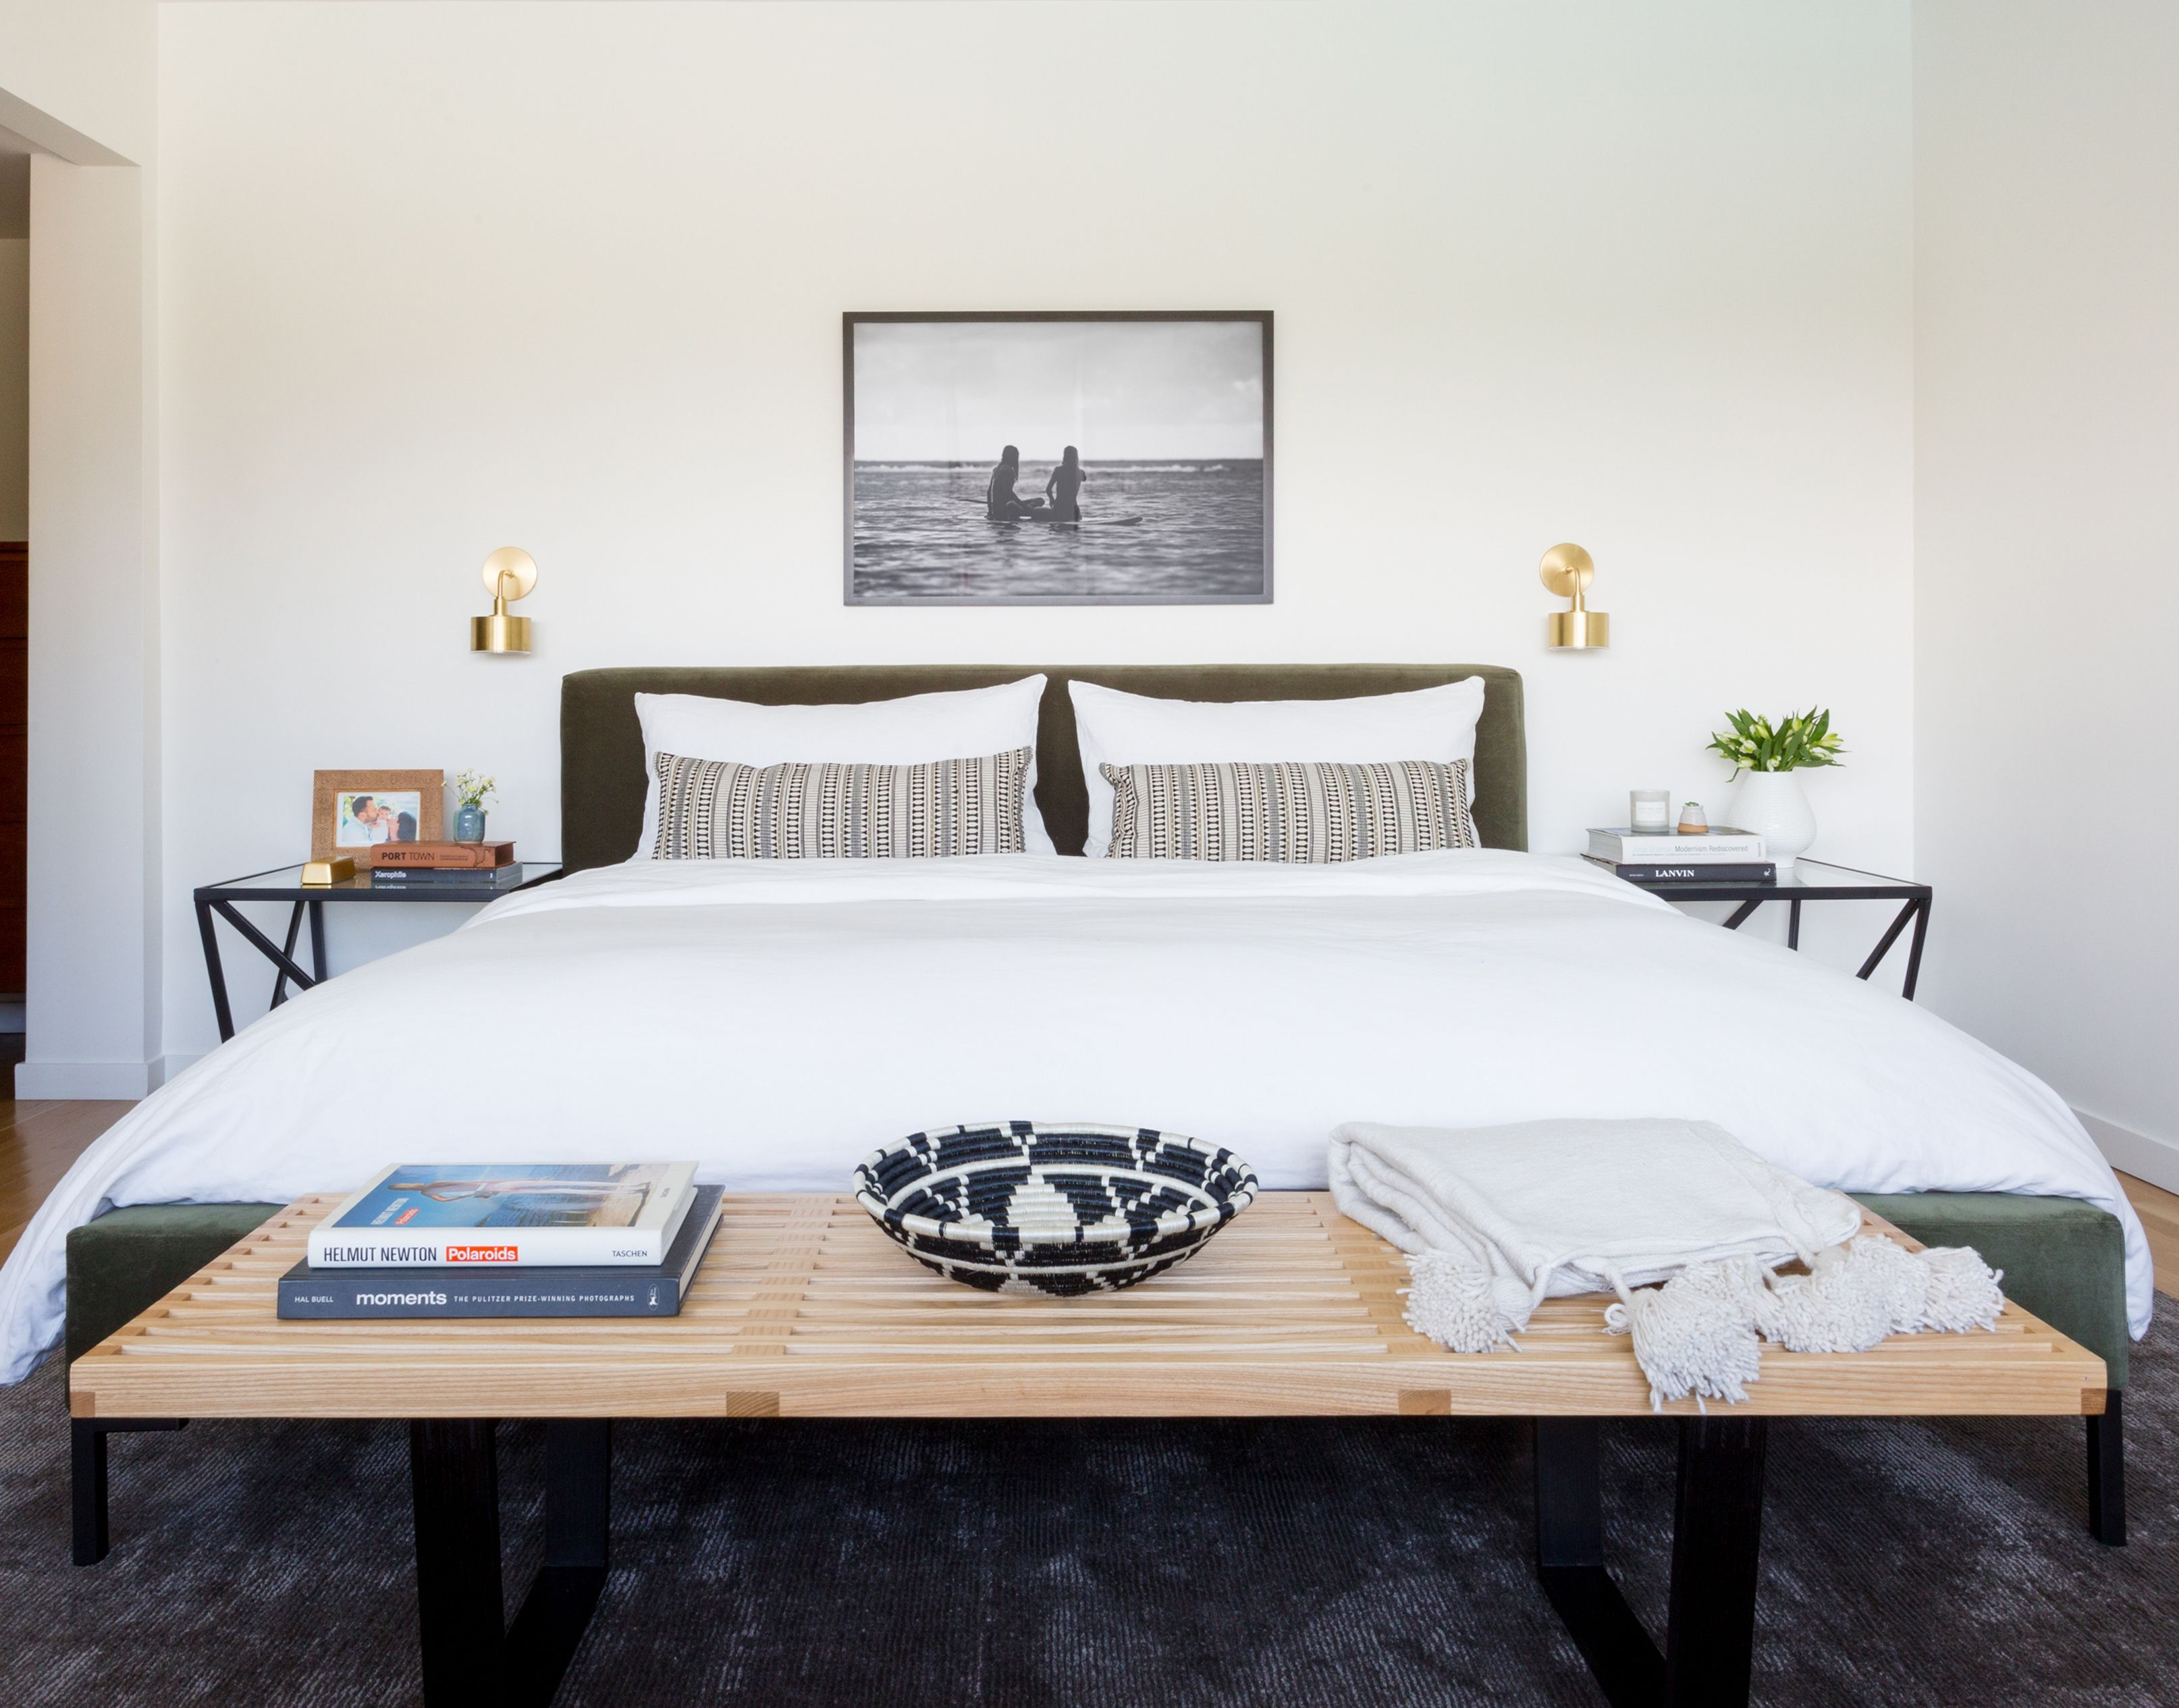 brown fabulous ideas modern bedroom the design best decor marvelous wooden have for minimal bed with m inspiration your what home varnish interior resort minimalist